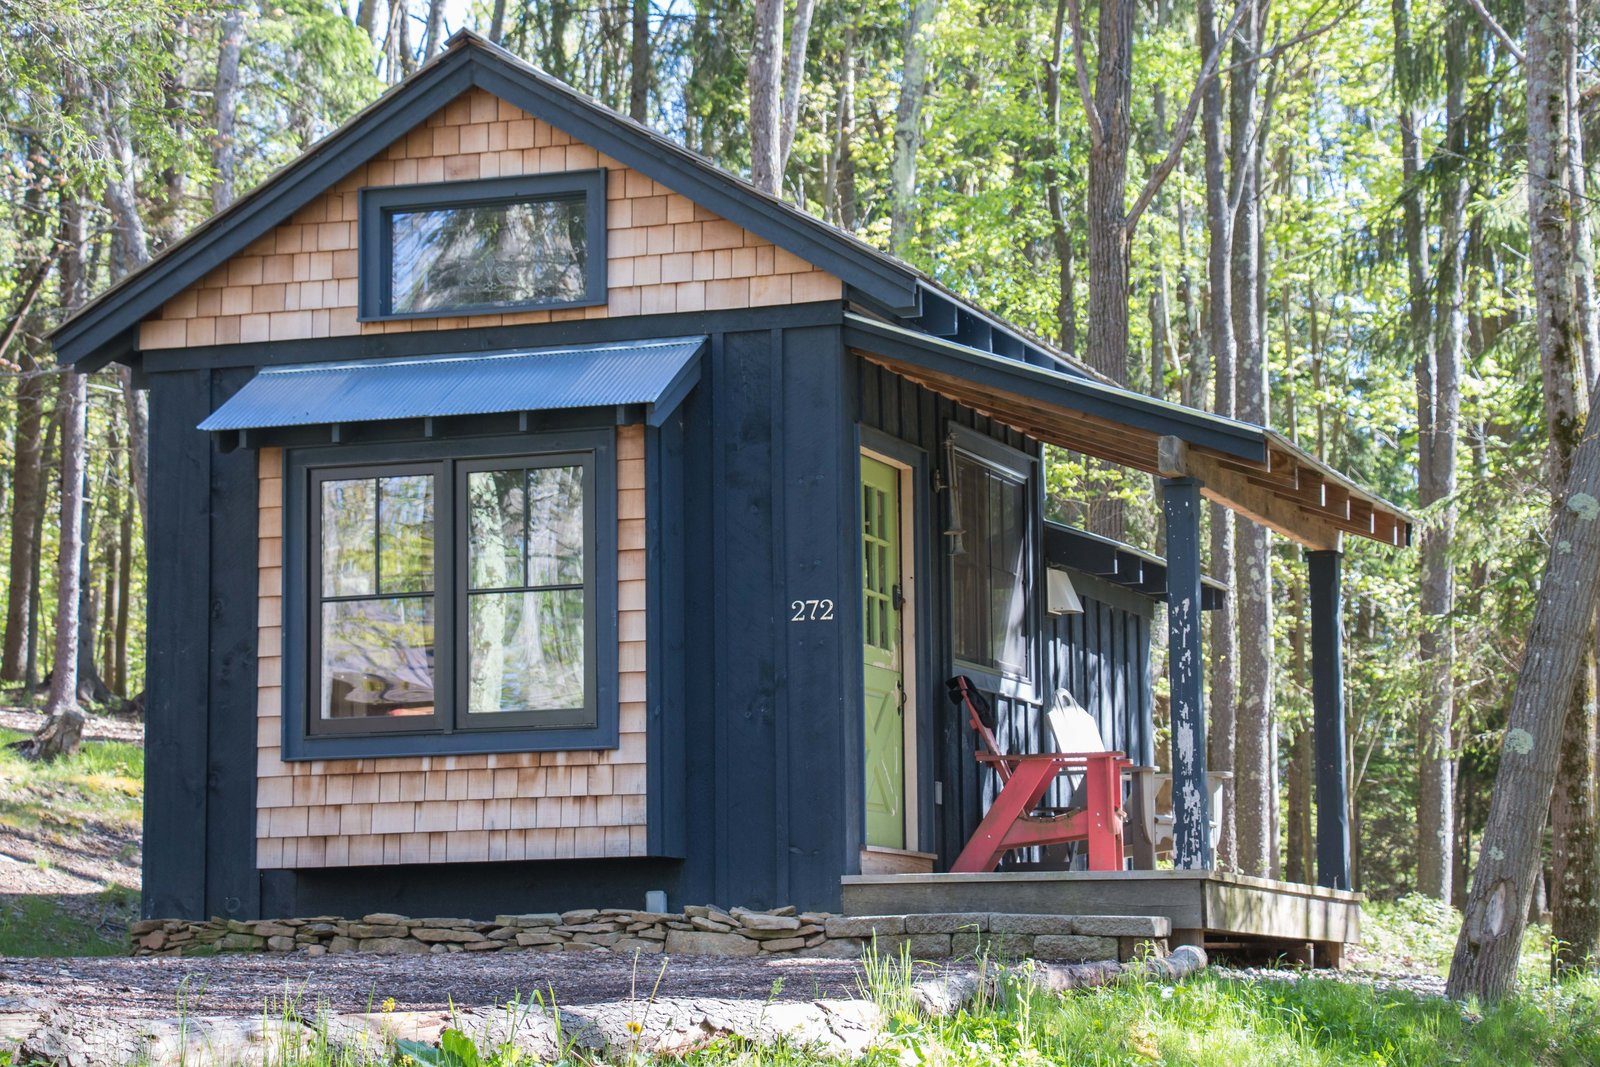 The company's founder Lisa M. Jan ensures that all the Blue Moon Rising's vacation rental homes are built sustainably, leaving only a minimal impact on its natural site.